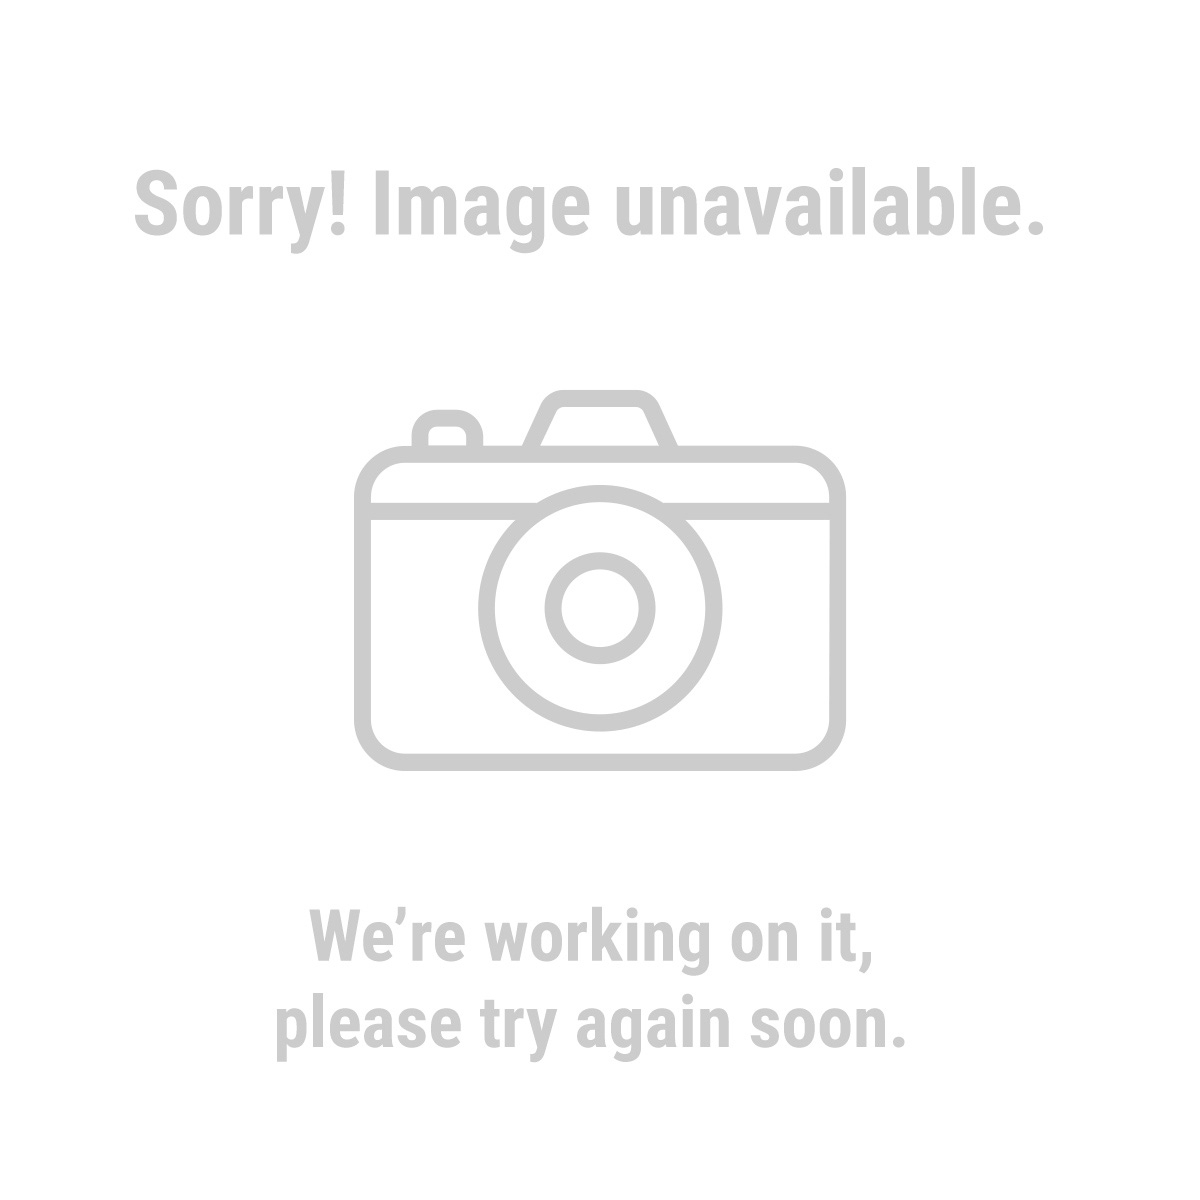 Large Tool Chest Top Cabinet Top Box And Rollcab Box us Ball Bearing Slides Industrial Roller Cabinet